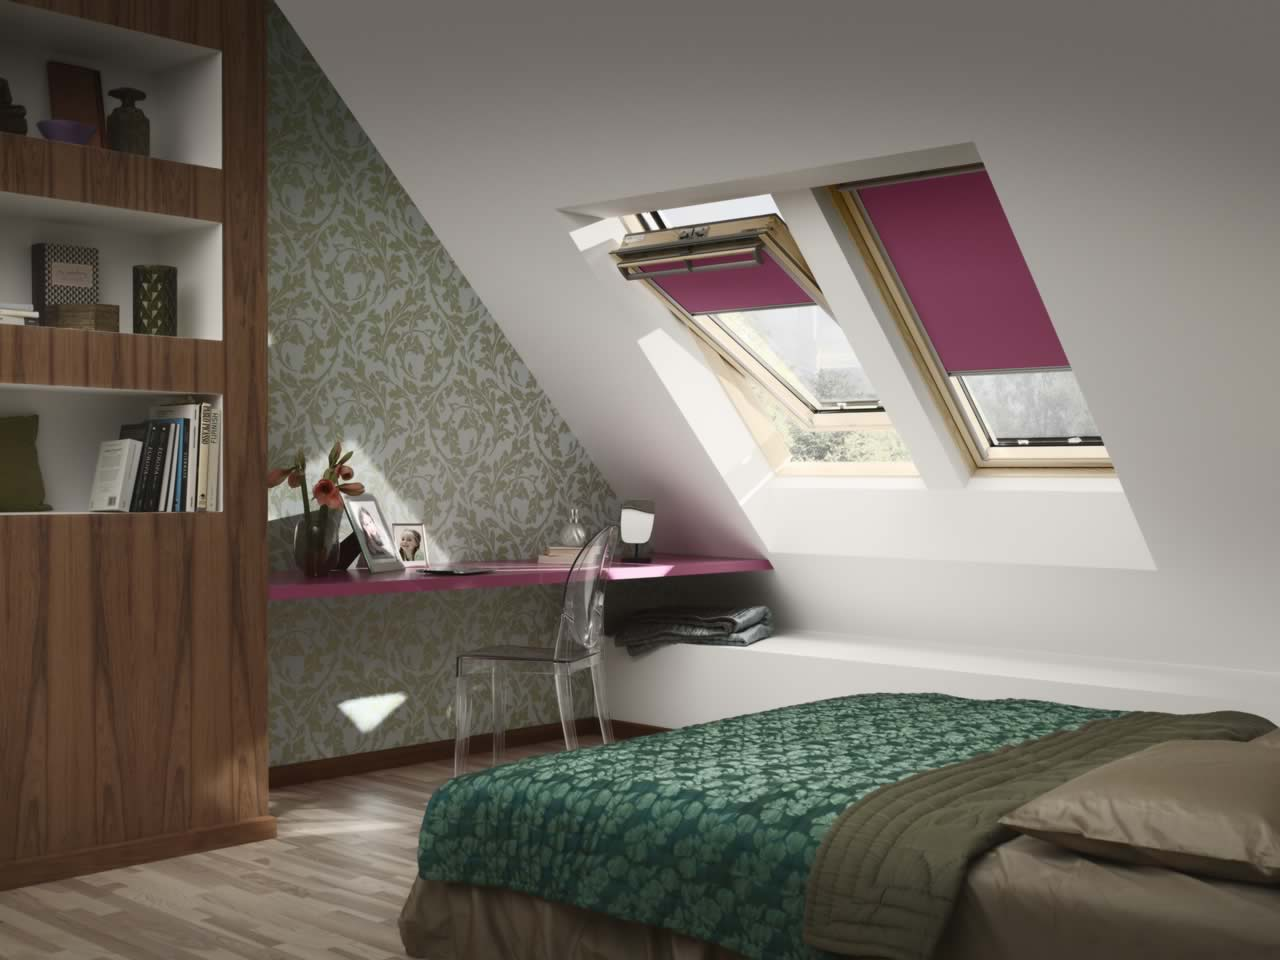 Velux and Skylight Blinds - Blackout Pink Skylight